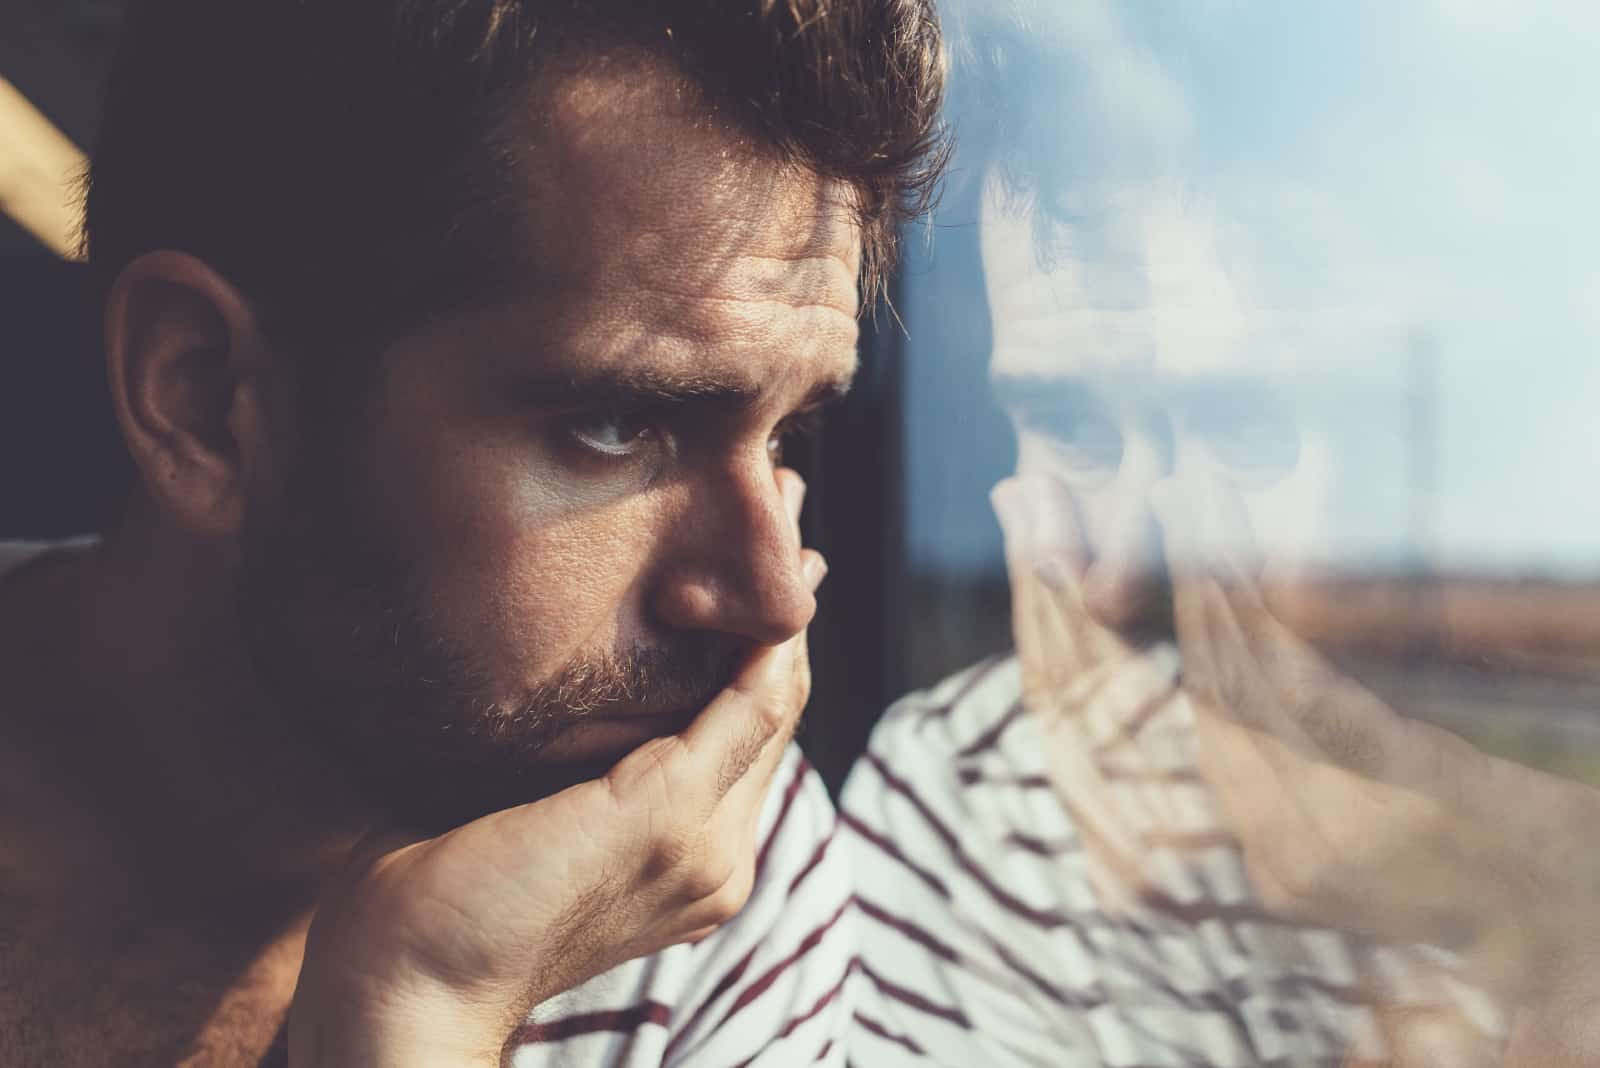 pensive man in striped shirt looking through window